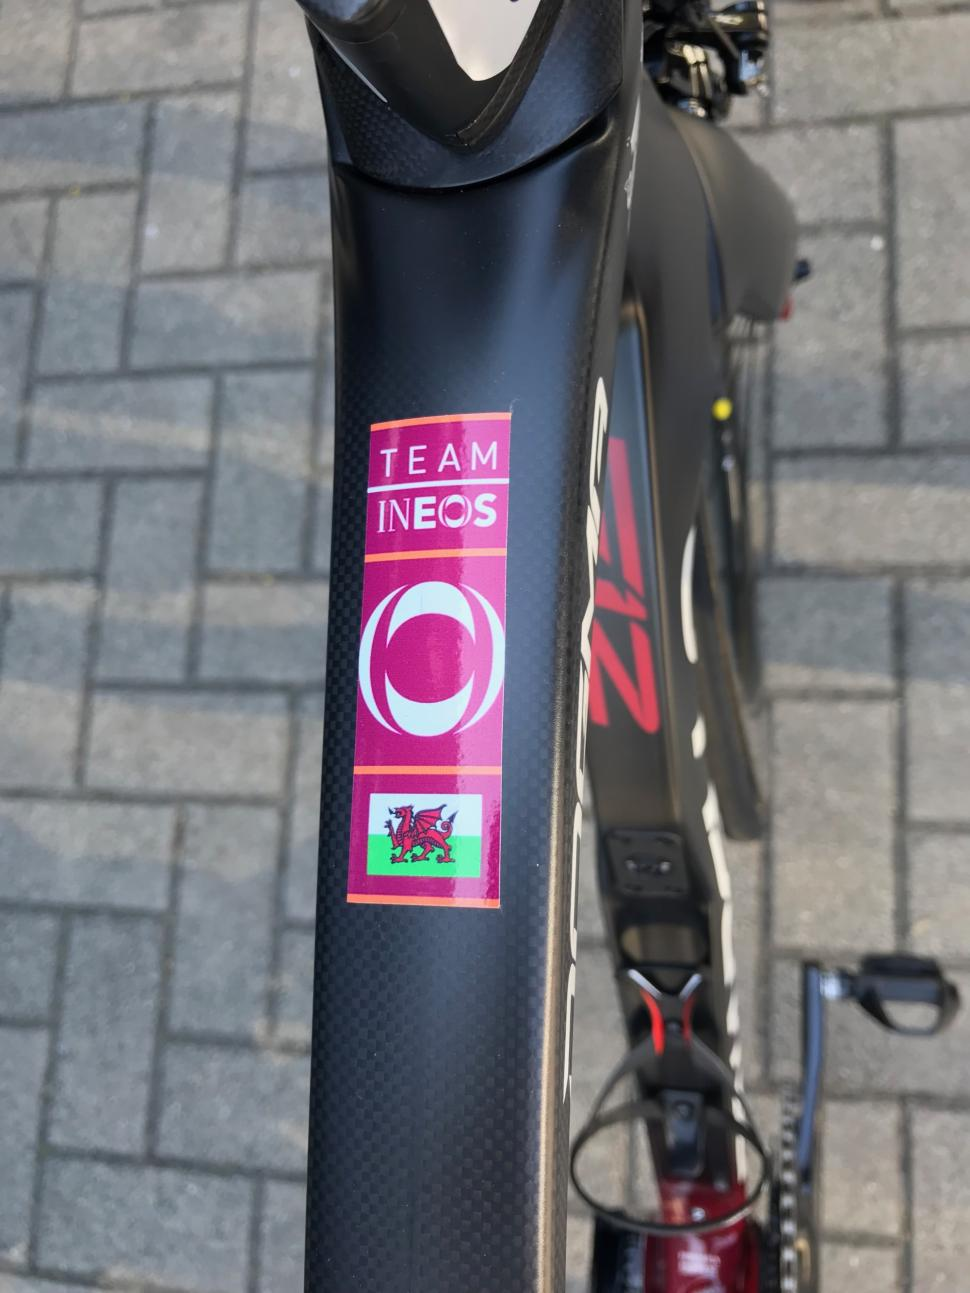 Tour de France 2019 Geraint Thomas Pinarello Dogma F12 - 1 (1).jpg